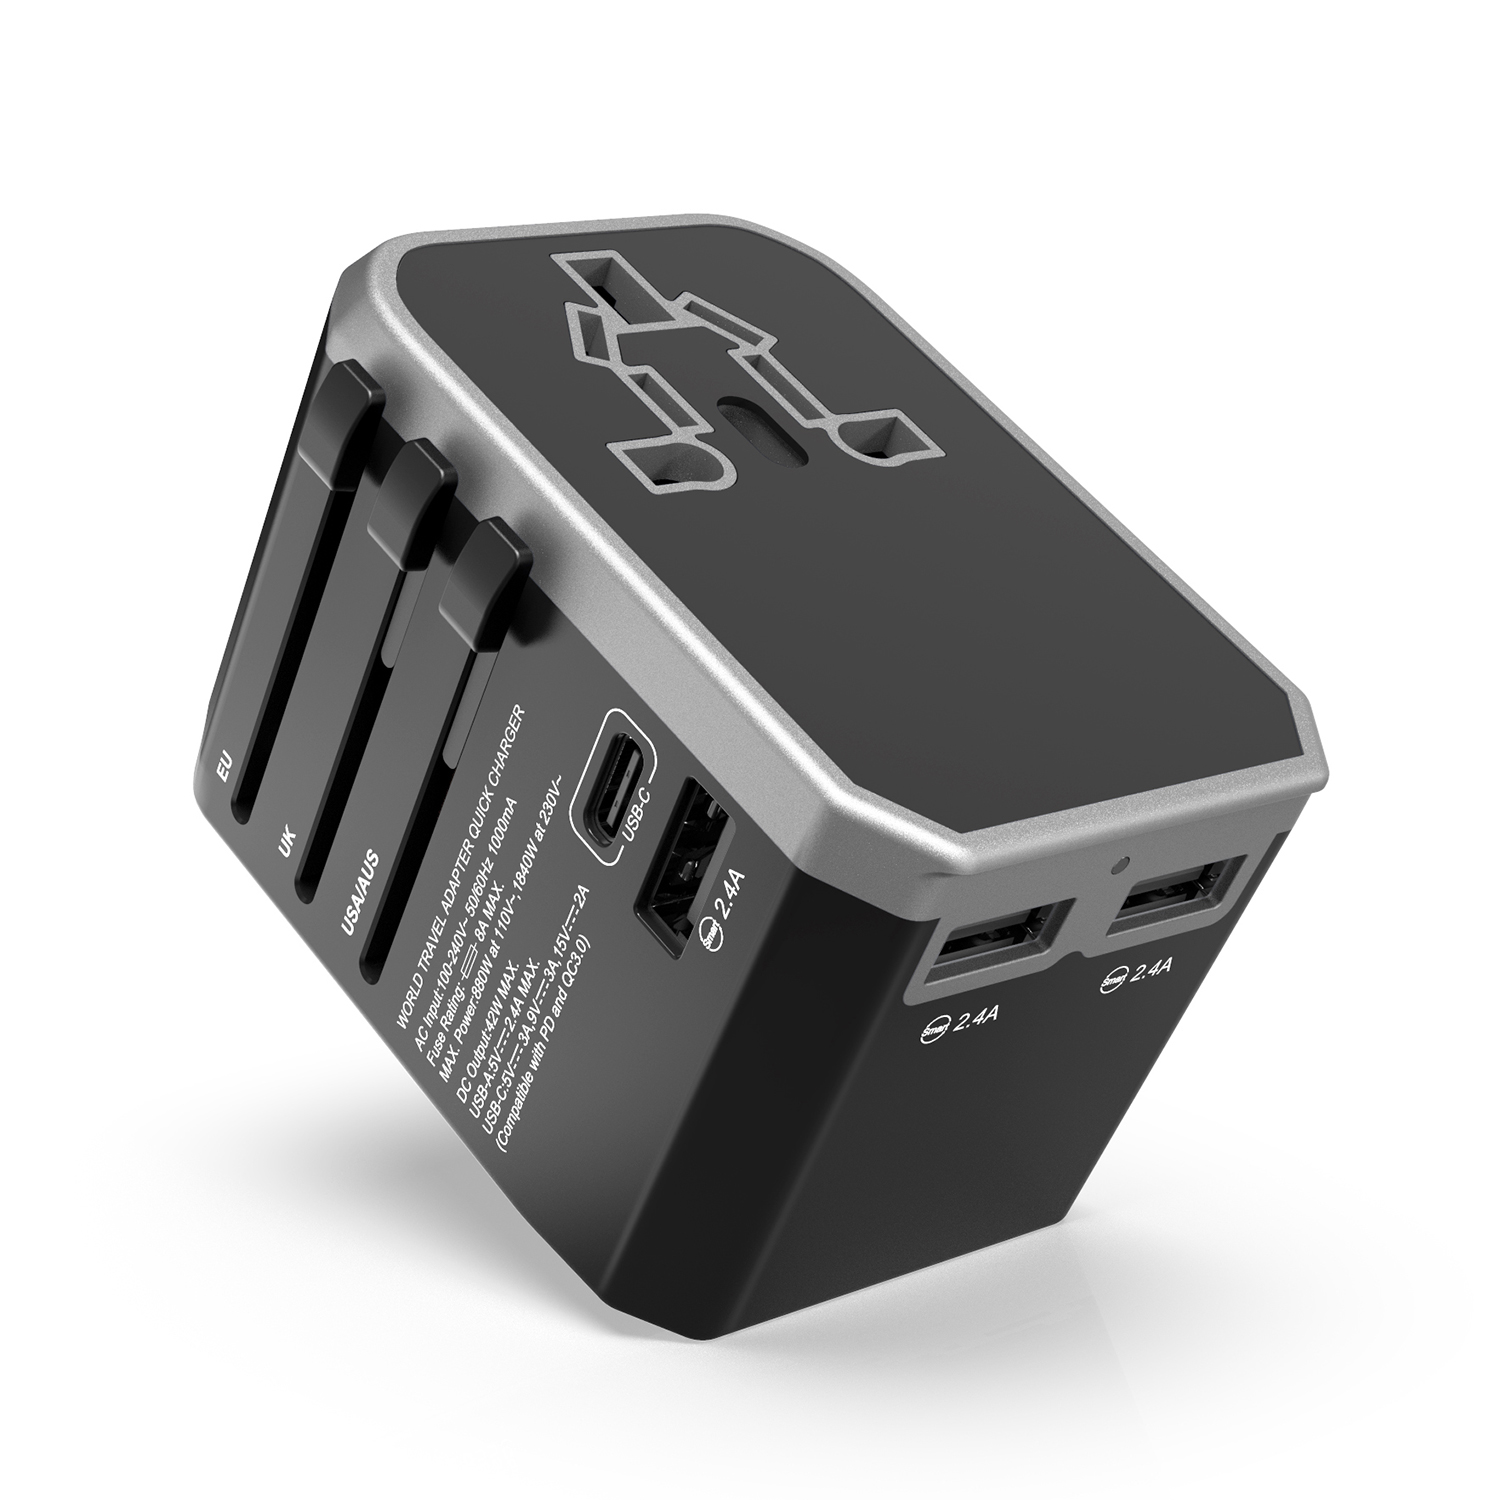 Hot groothandel universele reislader met EU AUS UK US plug 42 W PD usb wall charger